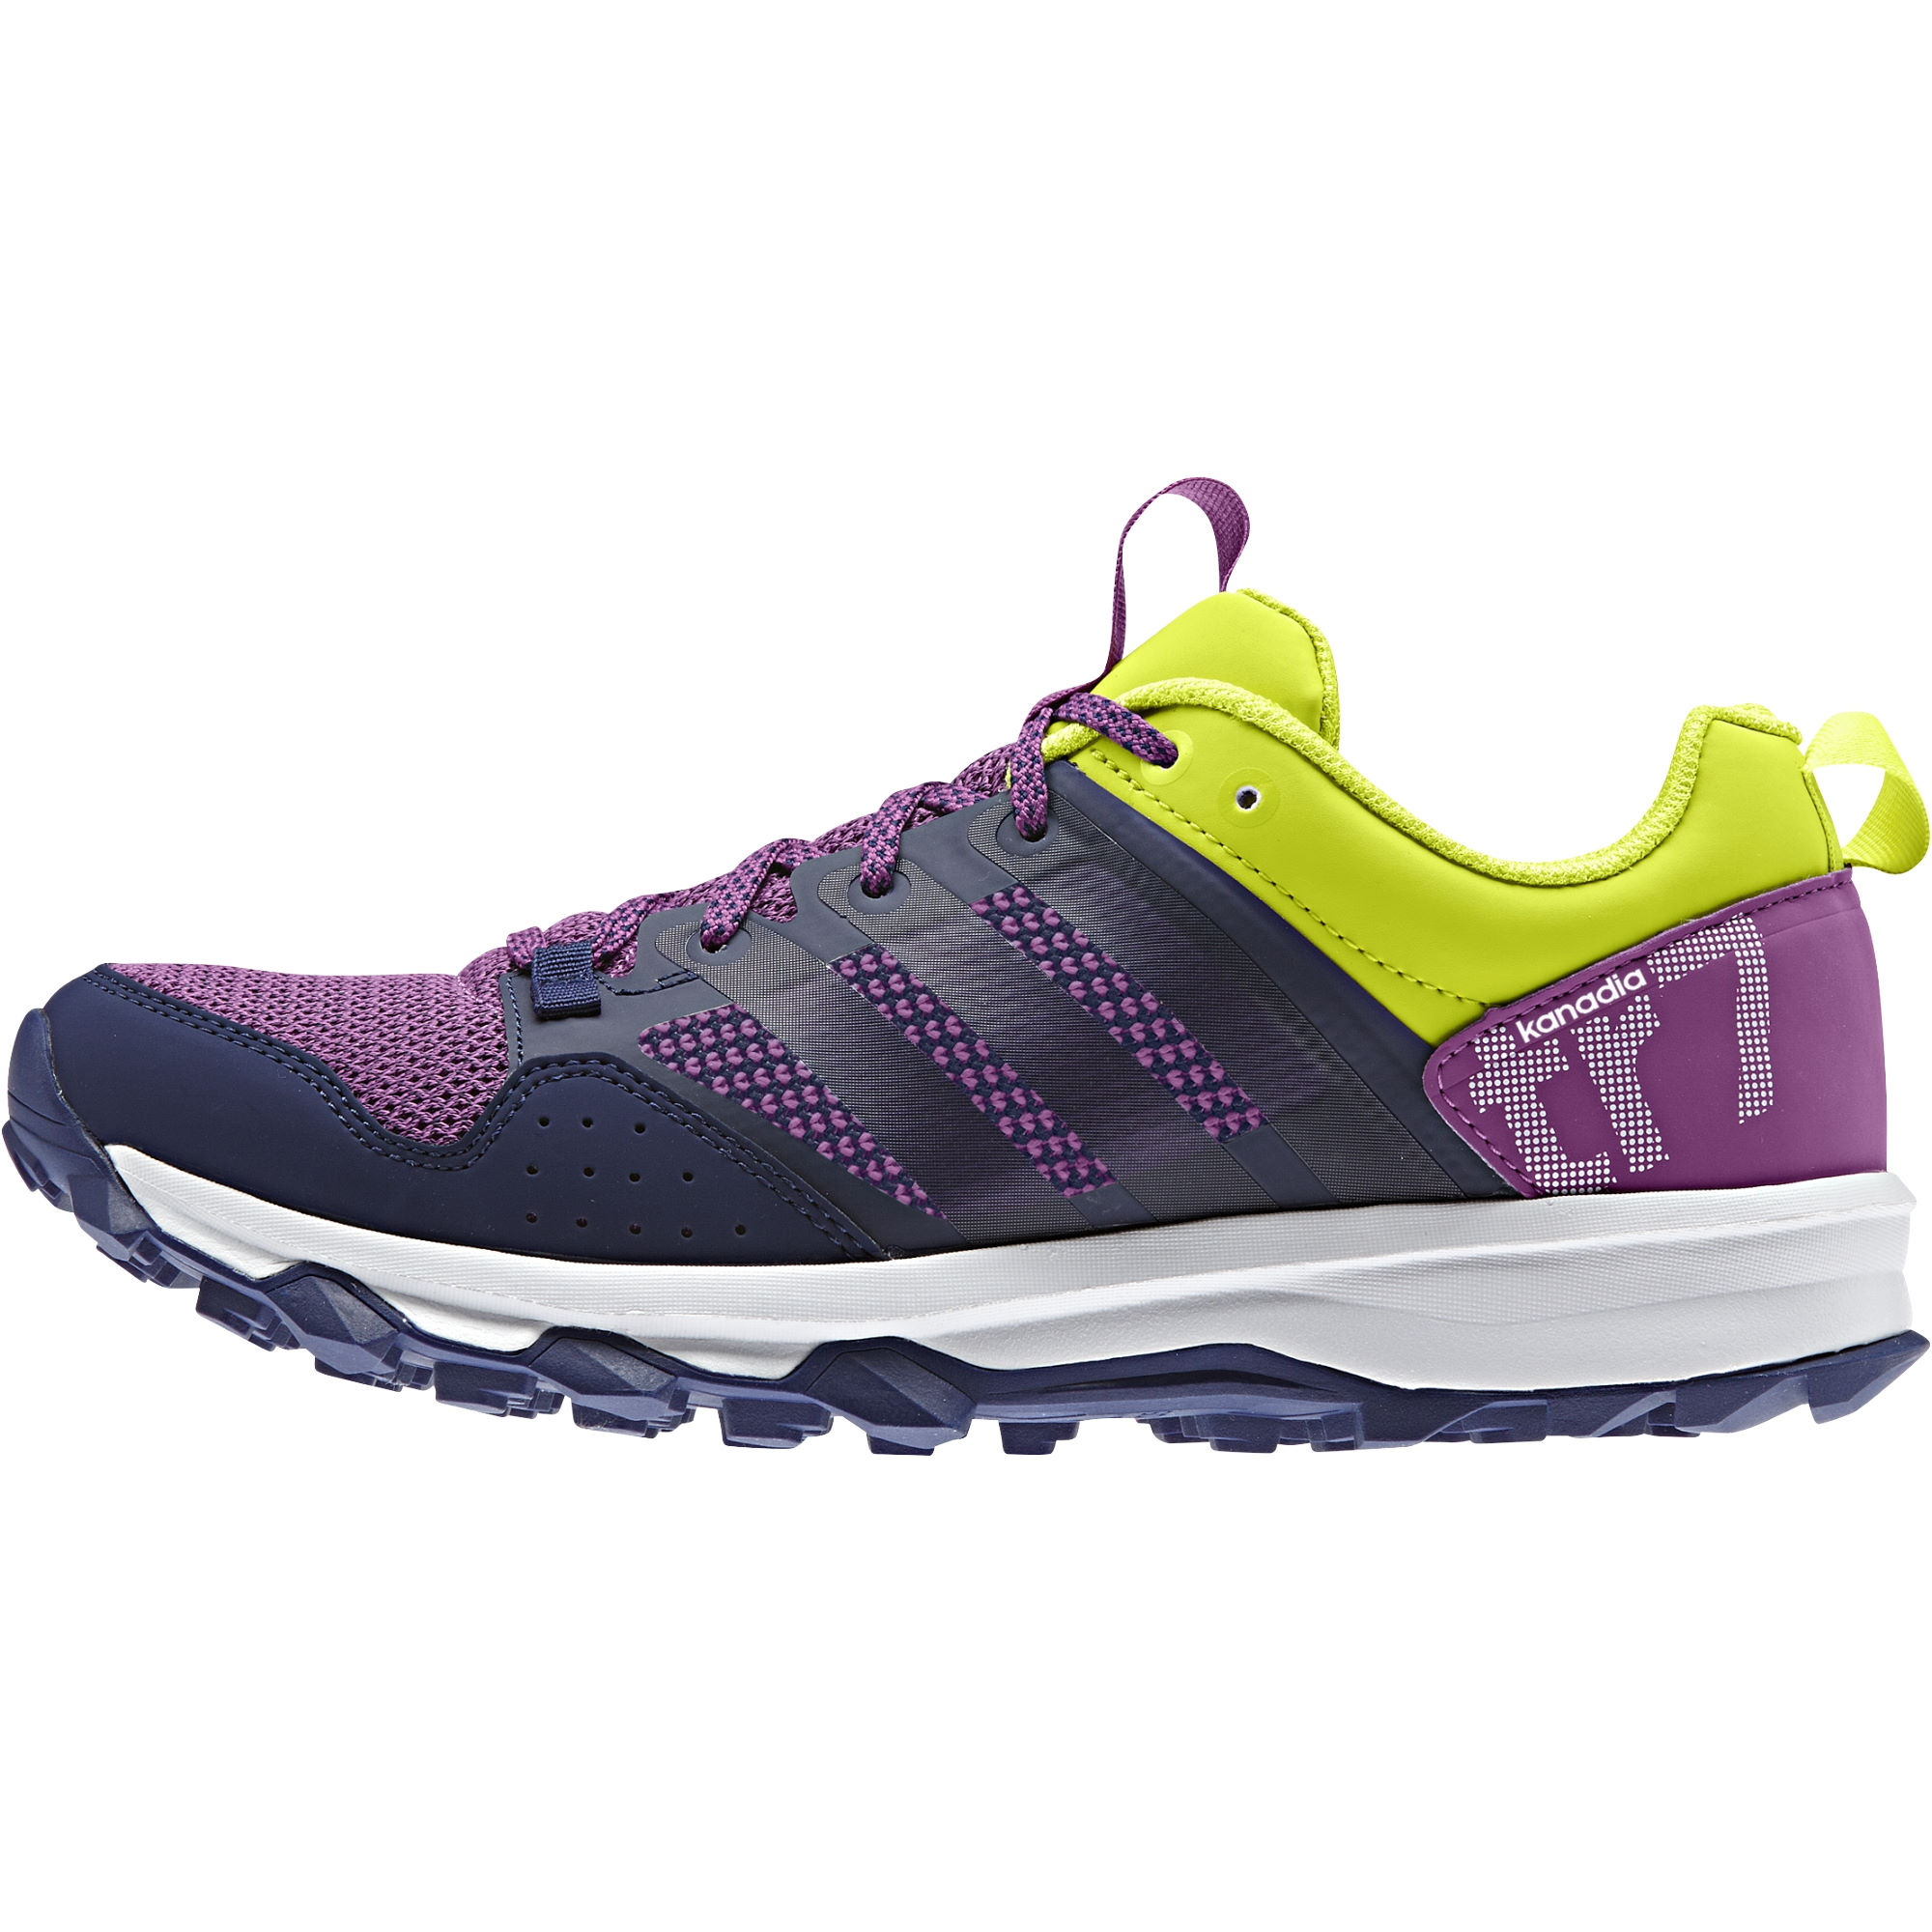 New Running Shoes Online Hnxtftg105 From China